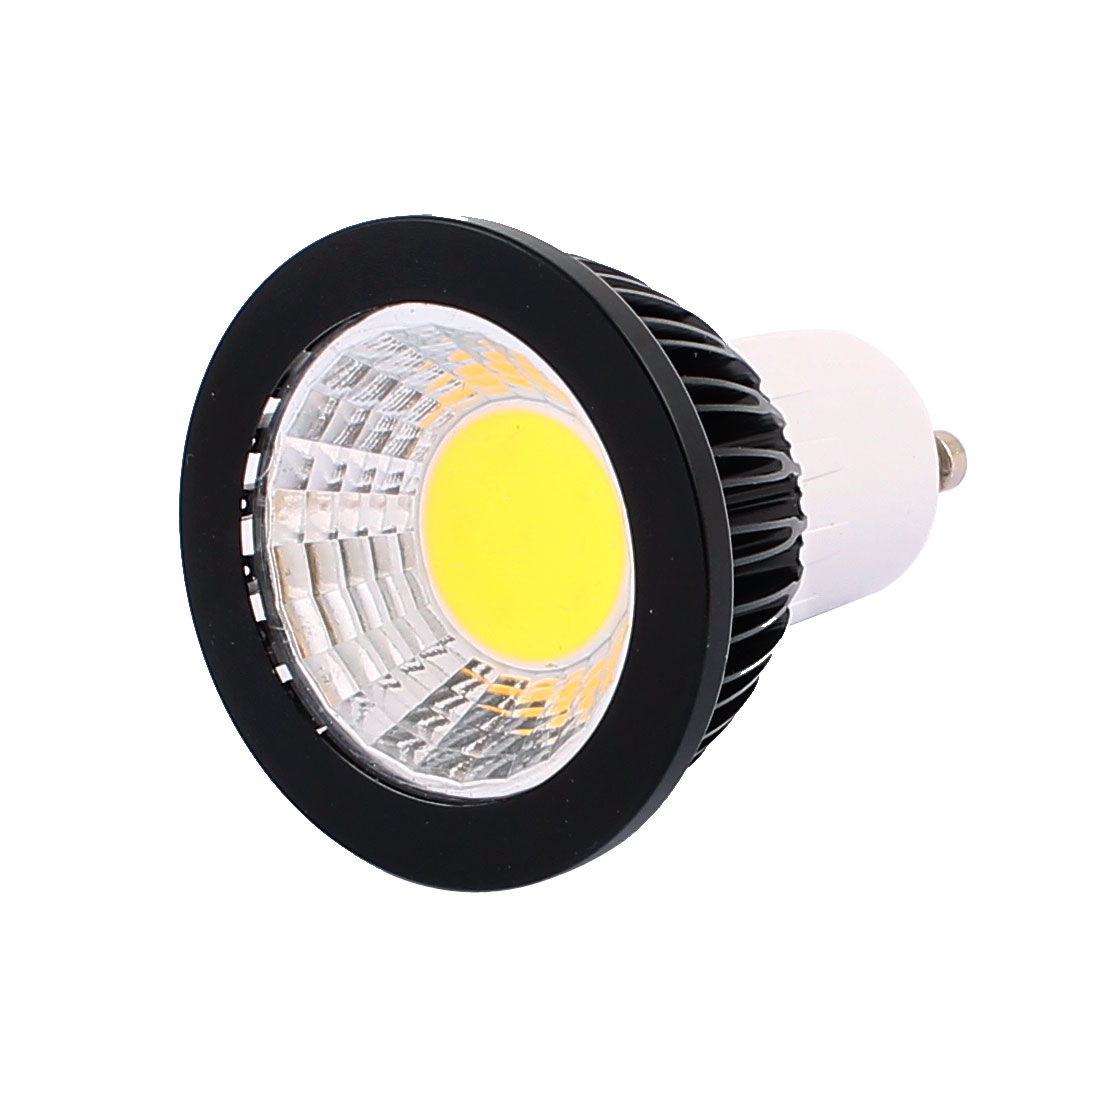 AC85-265V 3W Power GU10 Base COB LED Spotlight Bulb Downlight Pure White